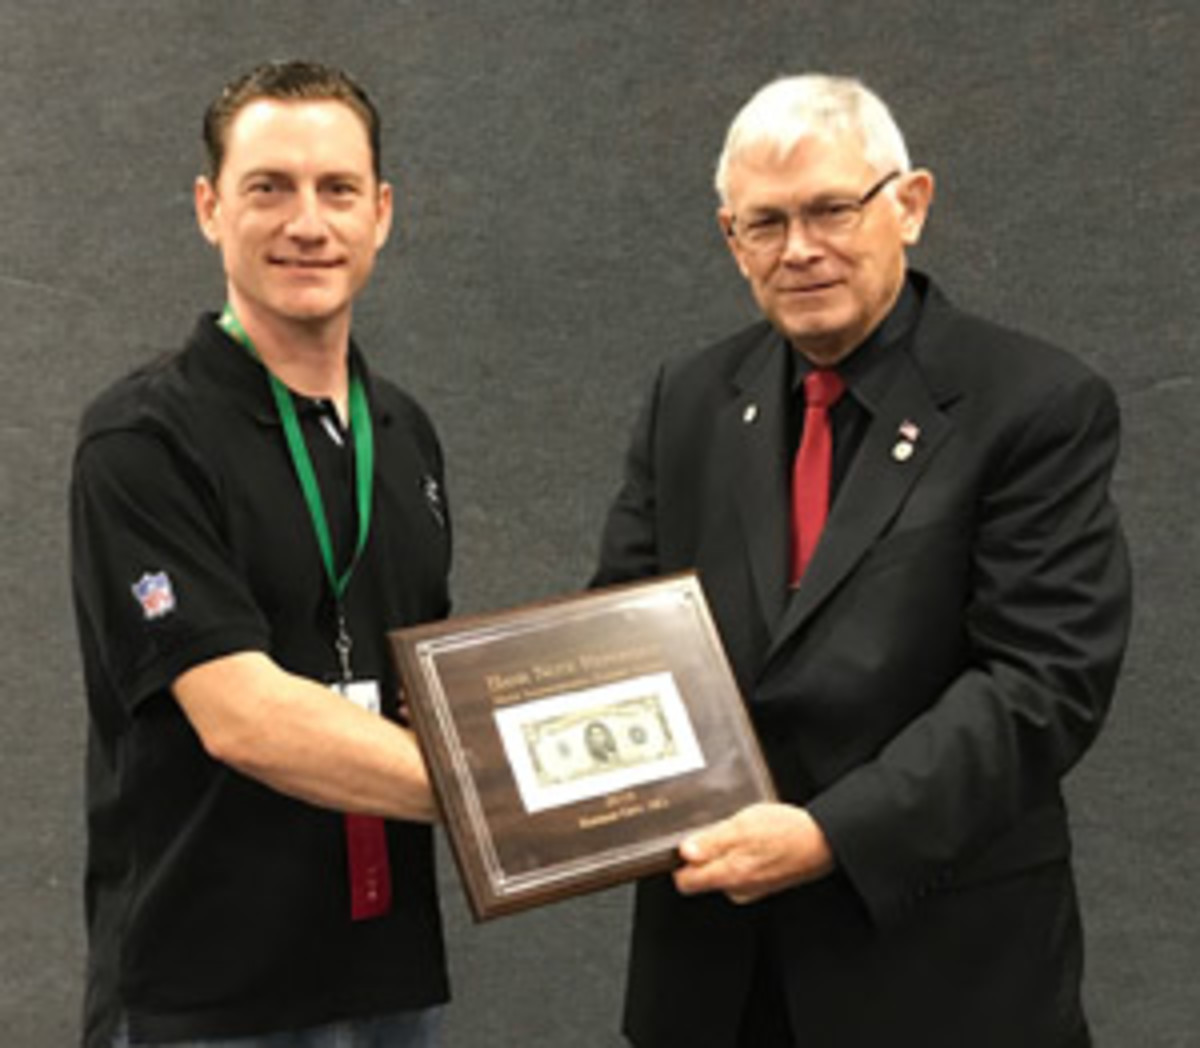 Robert Calderman, left, receiving the 'Bank Note Reporter' Most Inspirational Exhibit Award from Clifford Mishler during IPMS 2018.